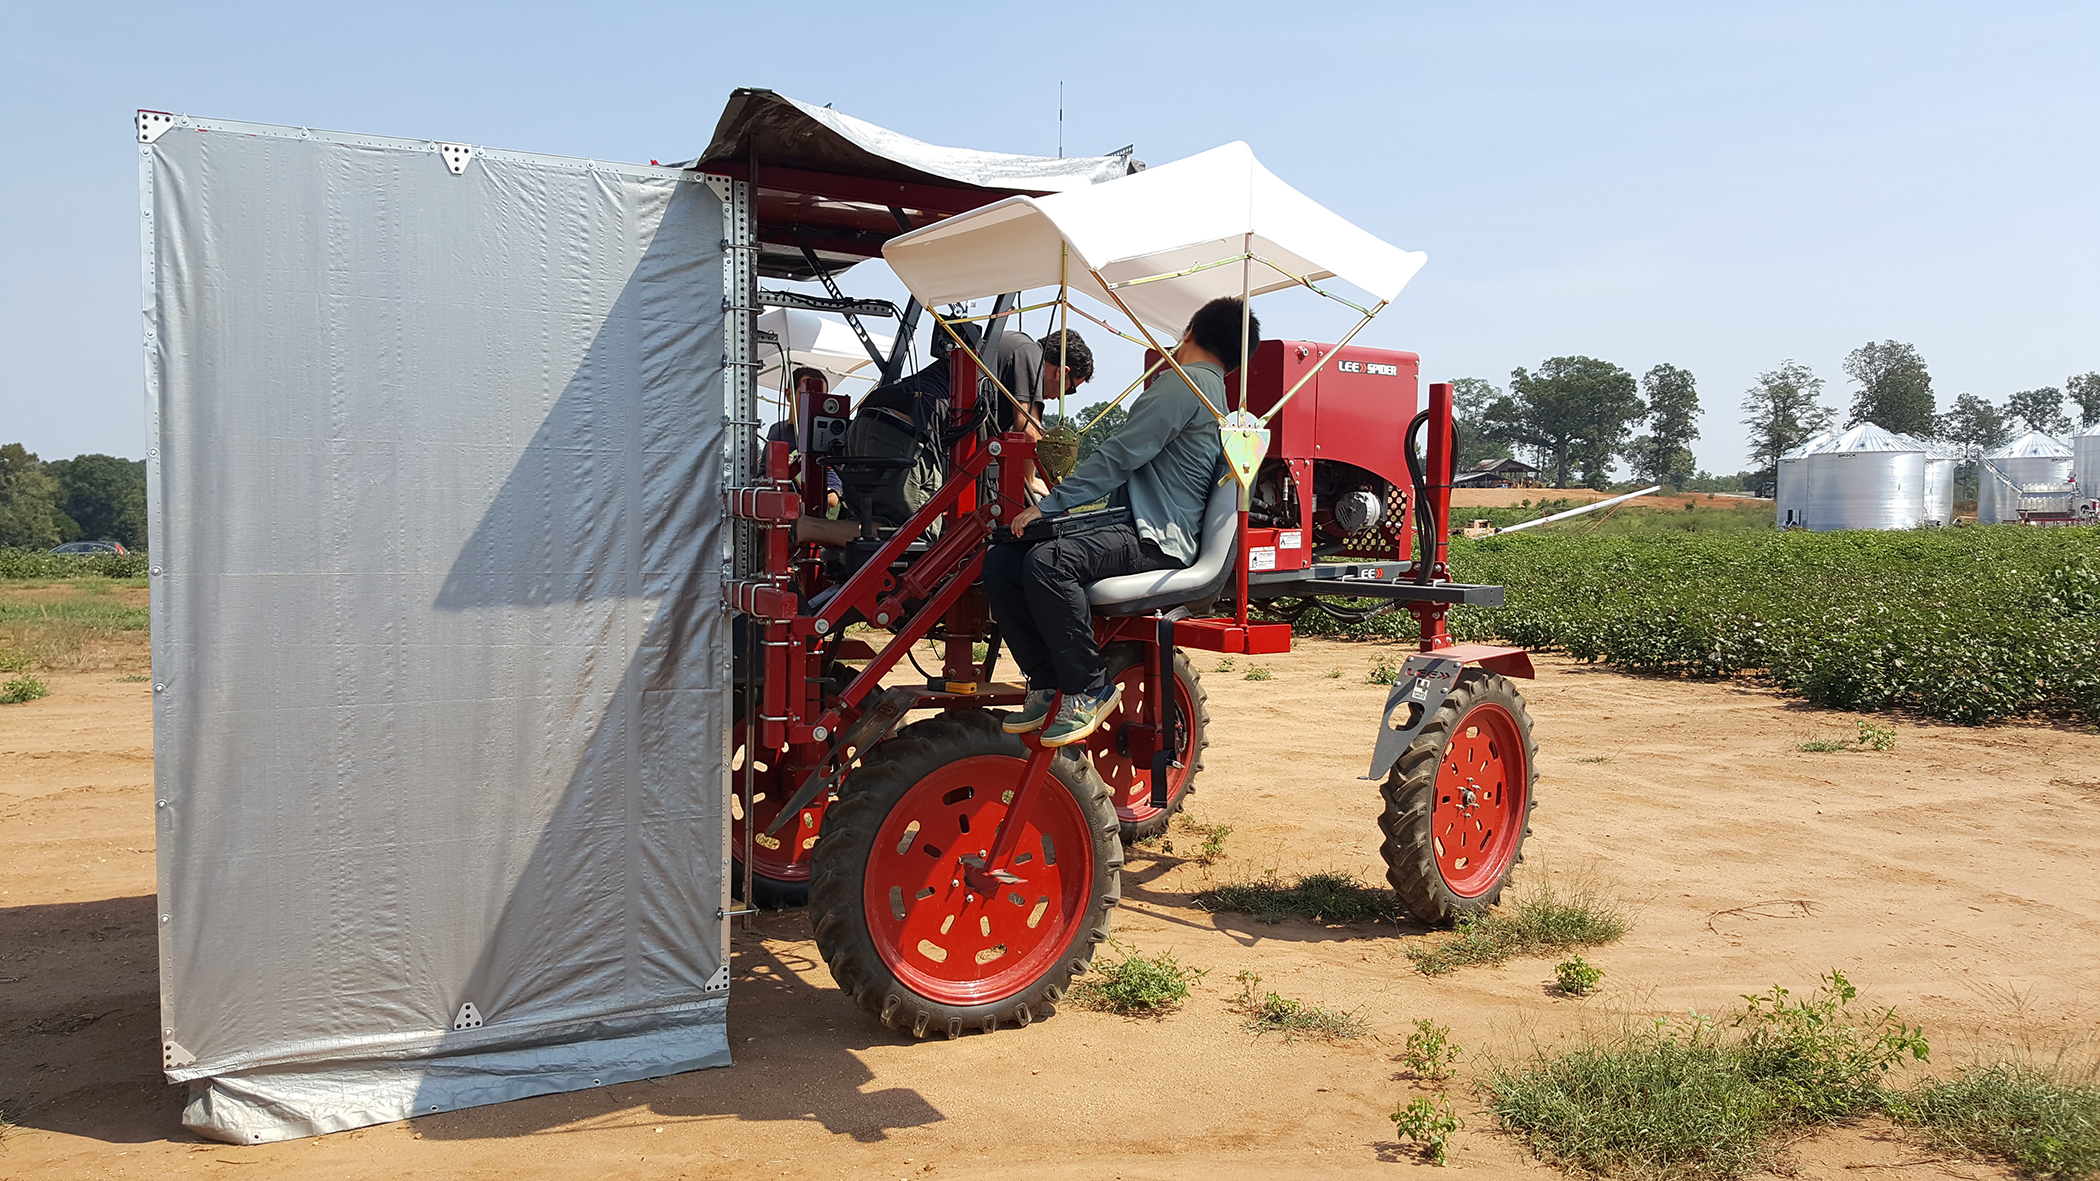 Members of the research team prepare to test multispectral, hyperspectral and thermal cameras that will record data on plant characteristics last summer at the Iron Horse Plant Sciences Farm near Athens. The tractor used for preliminary testing will be replaced by all-terrain robots and unmanned aerial vehicles during the growing season this spring and summer.